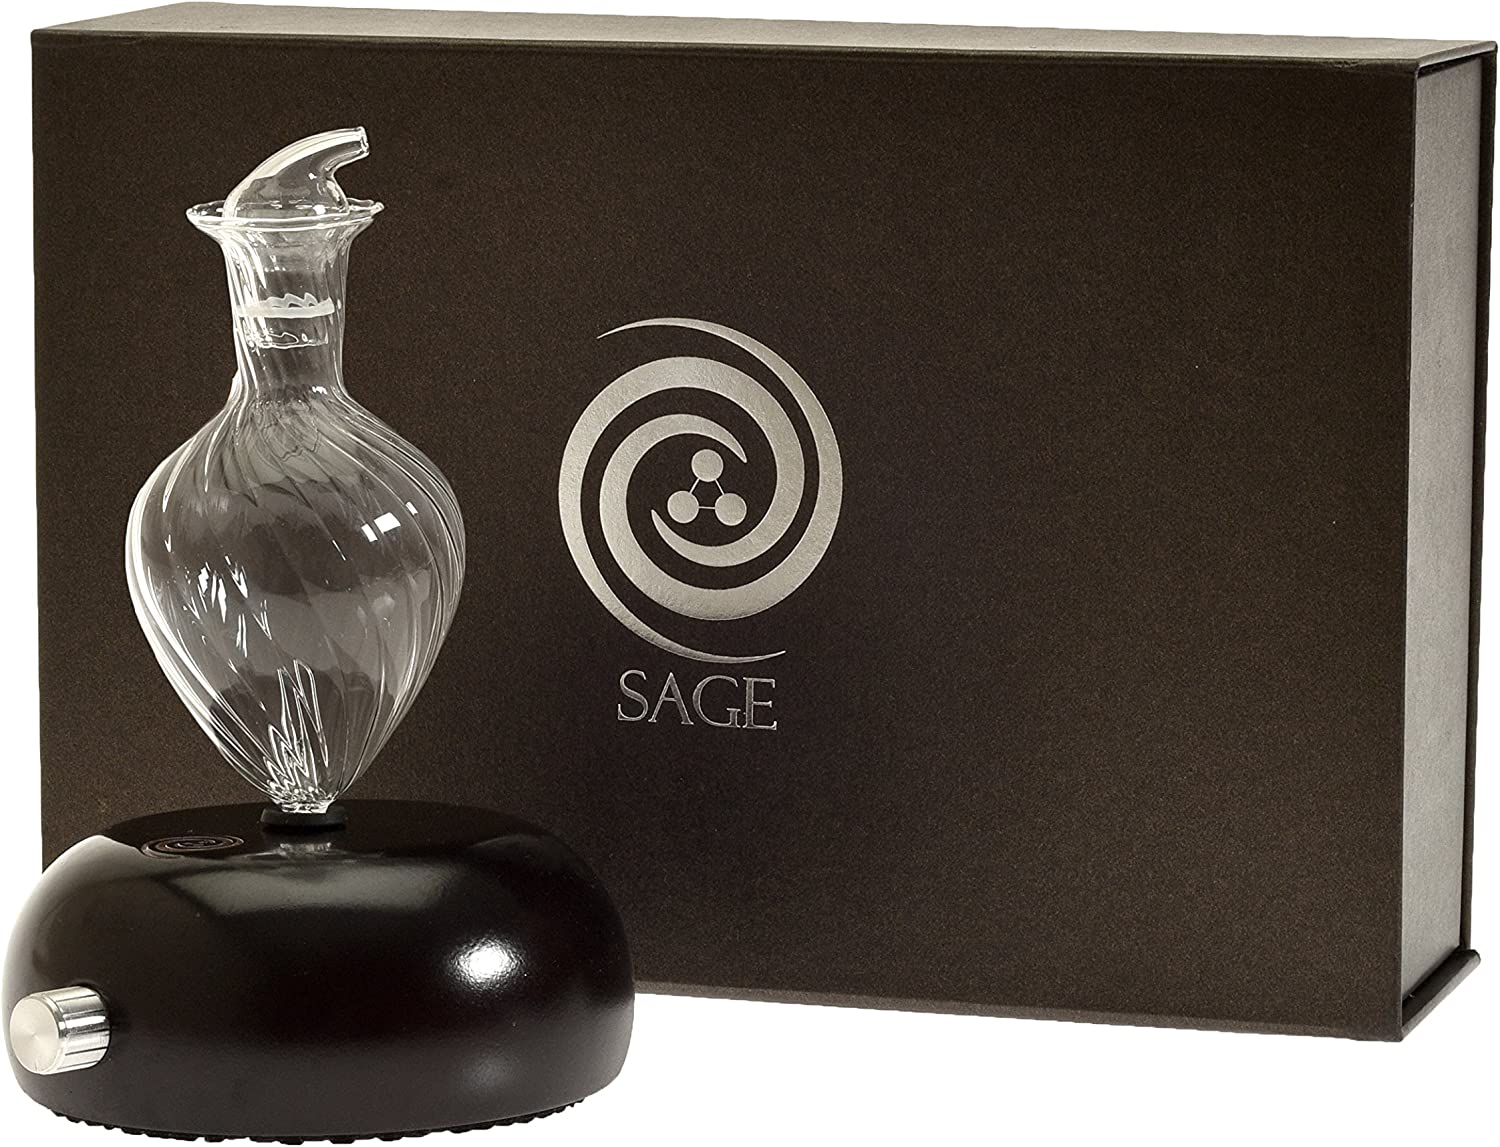 Nebulizing Diffuser for Essential Oils and Aromatherapy NO Heat, Water, Plastics OR Artificial Materials - Sage Core Series - Spiral Model in Gift Box